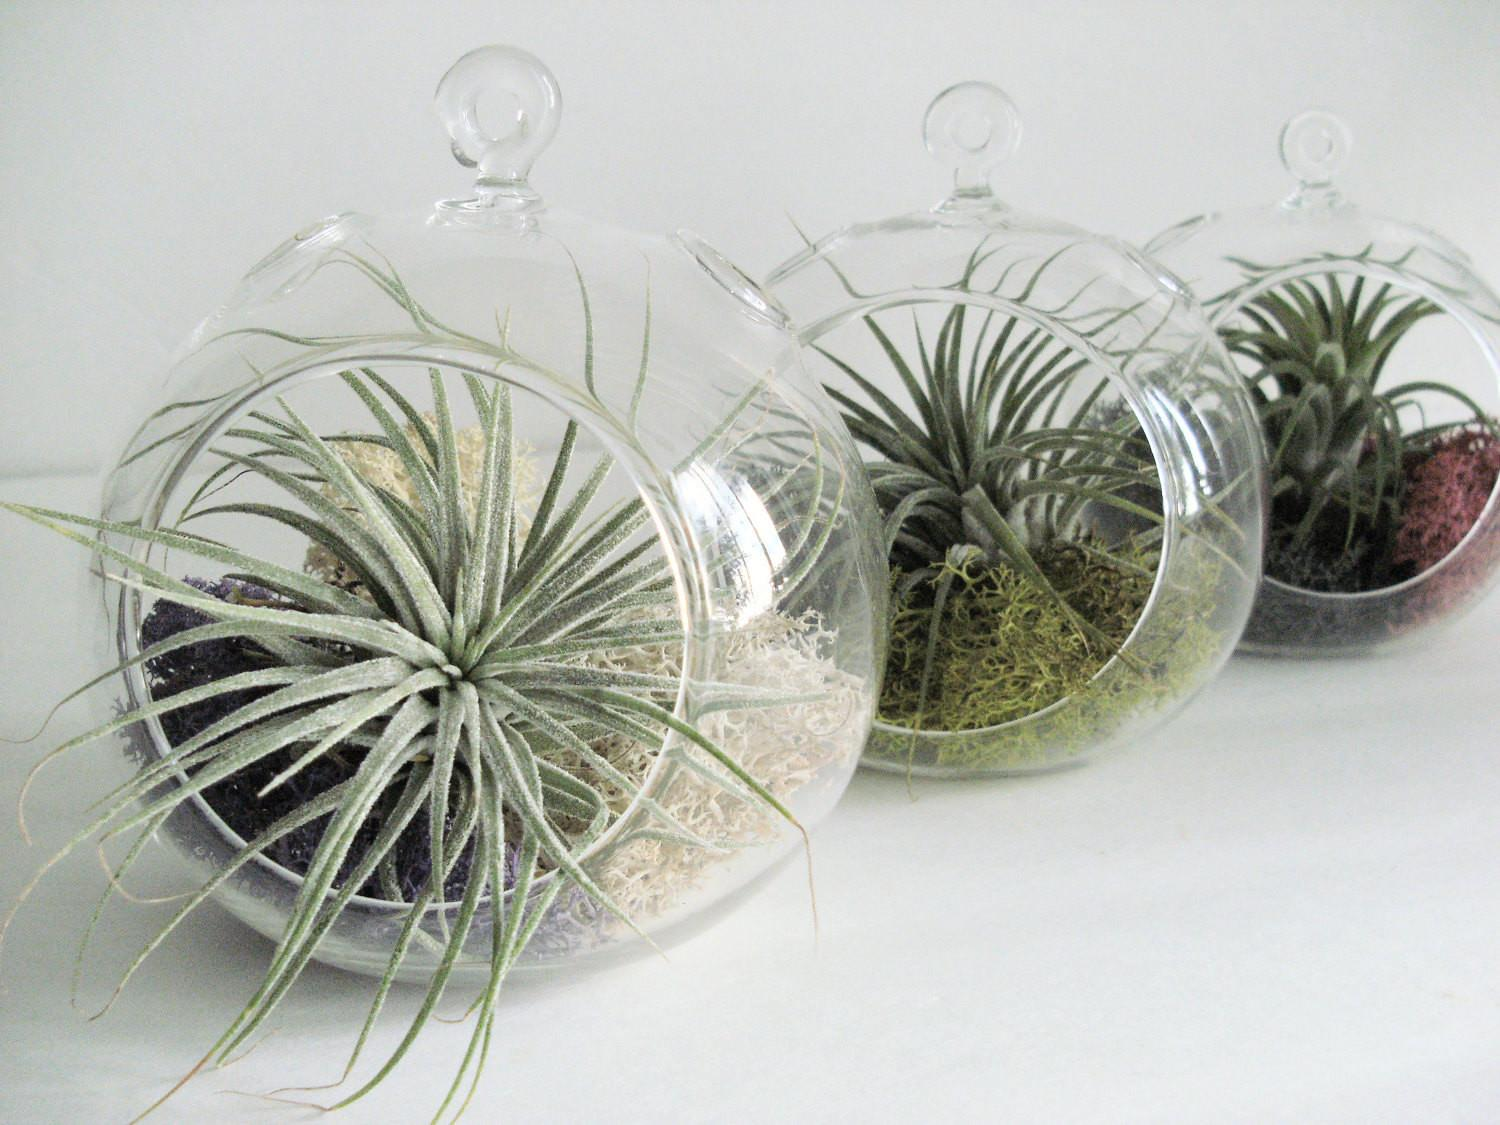 Small Hanging Air Plant Terrarium Your Choice Moss Colors